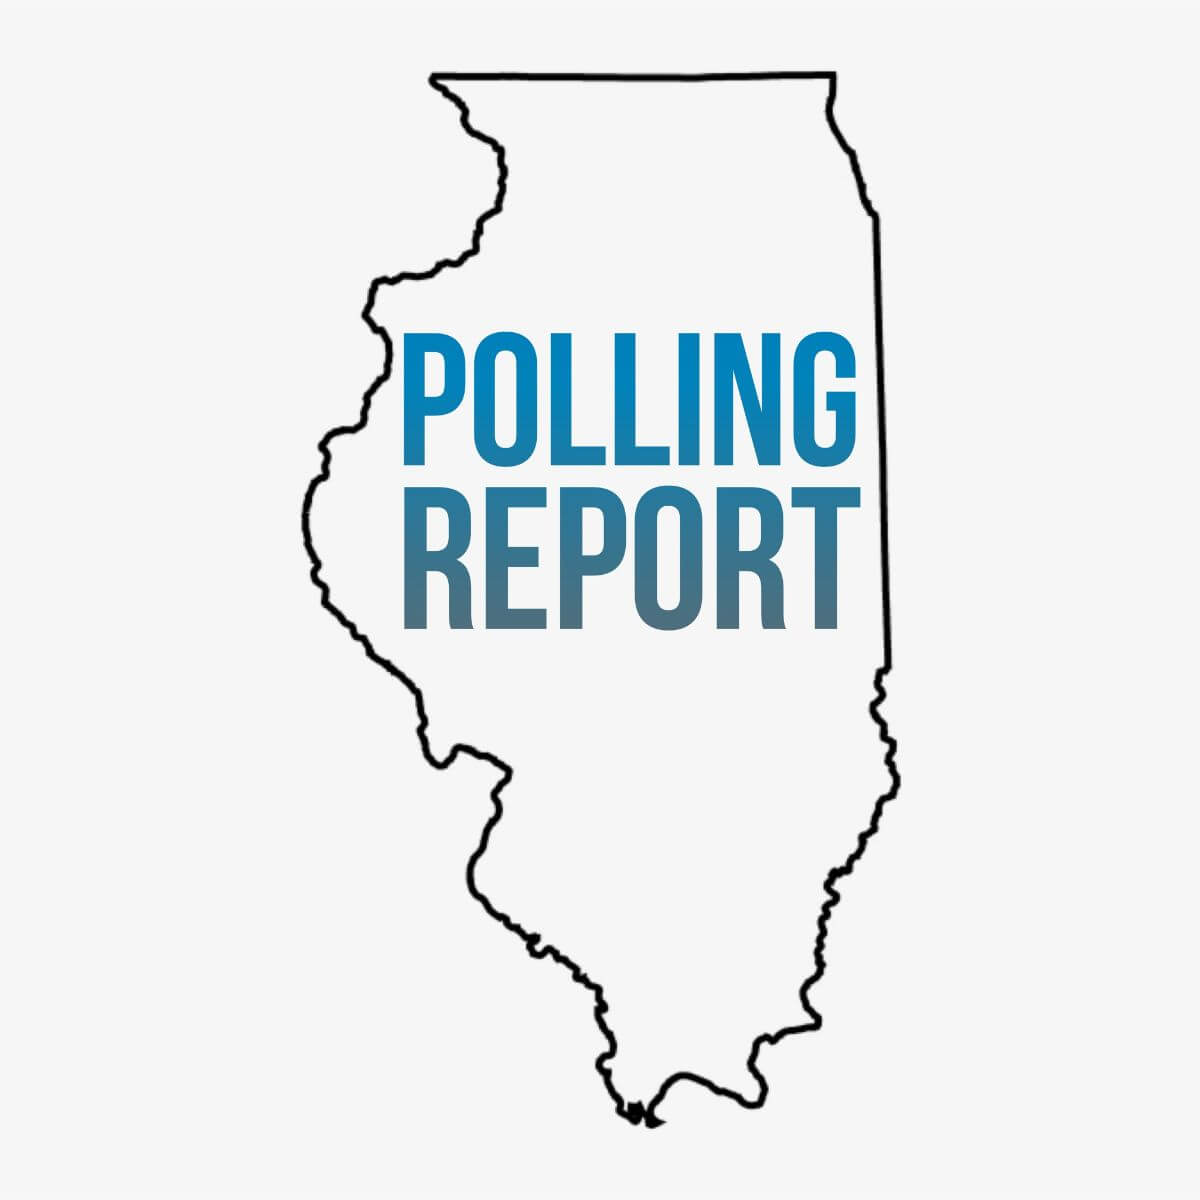 NEW POLL: 60% OF ILLINOISANS SUPPORT GOV. PRITZKER'S LEADERSHIP!